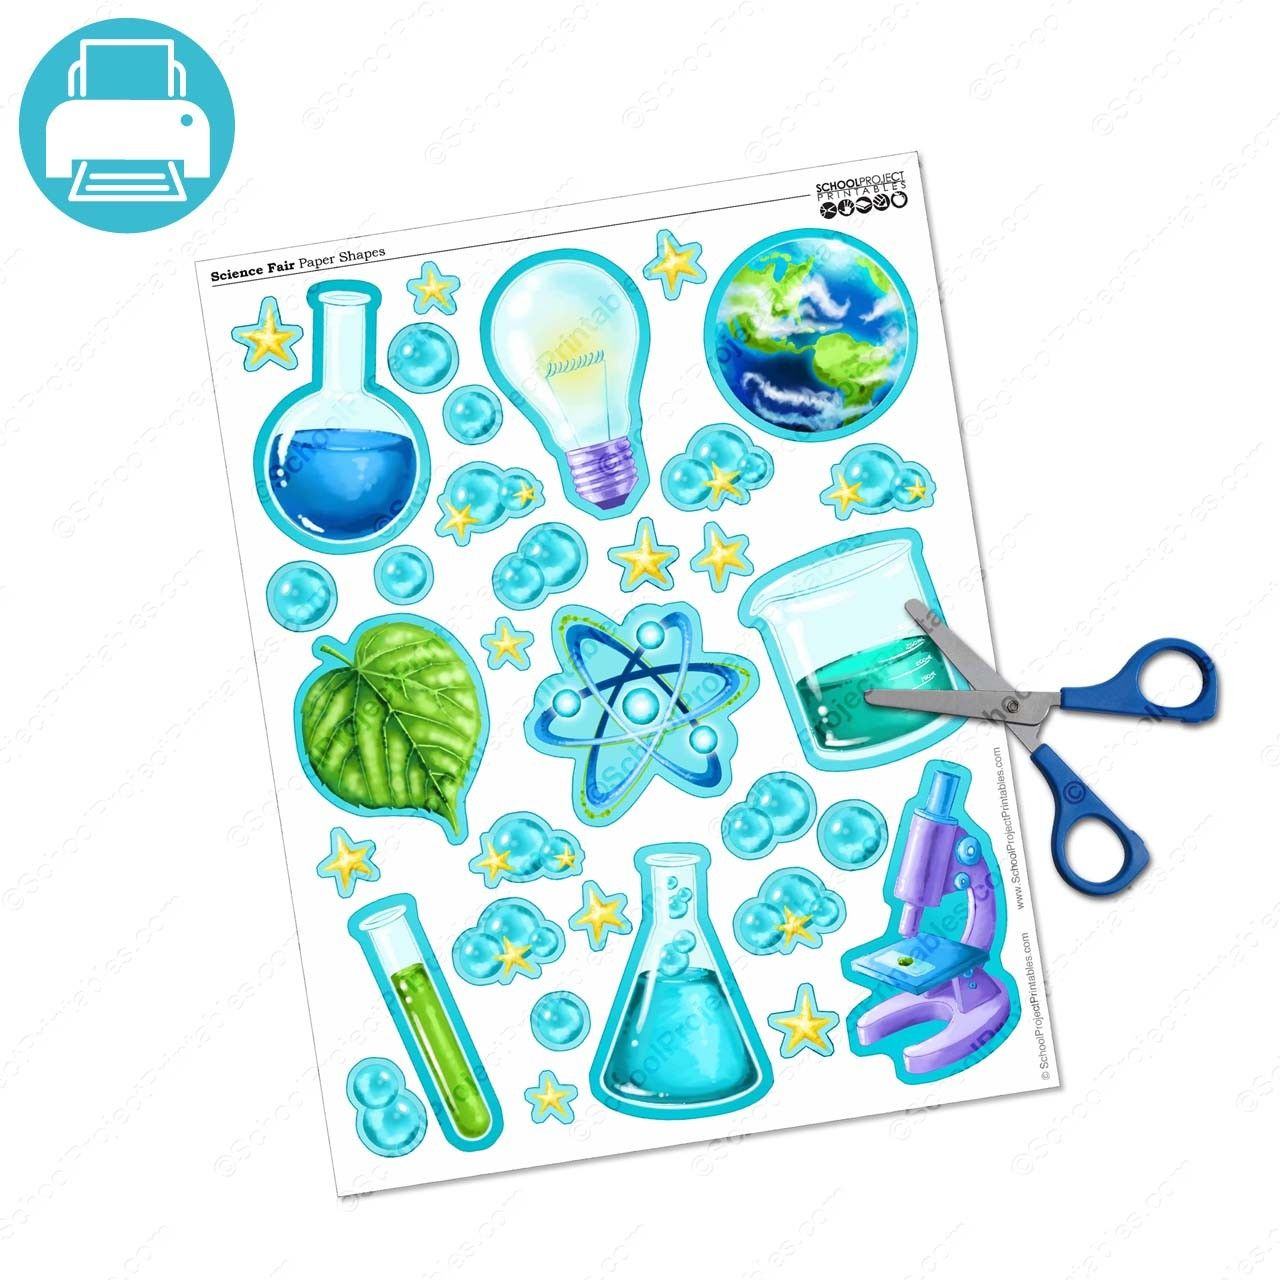 Science Fair Icons